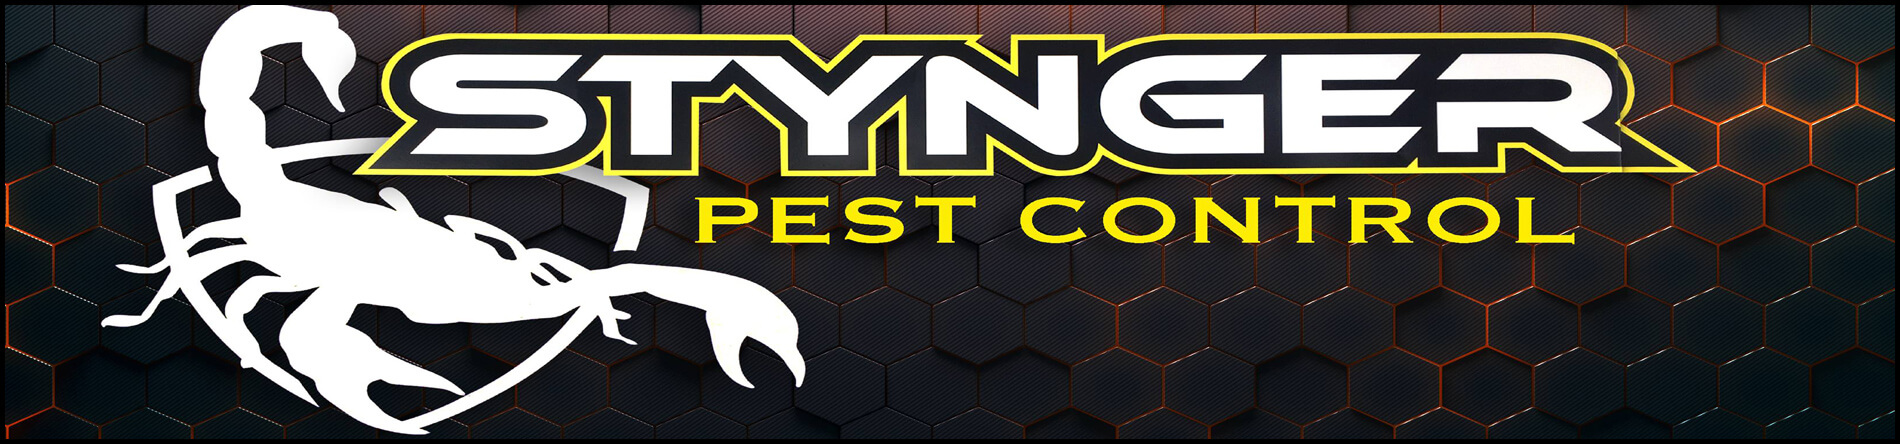 Stynger Pest Control is a Pest Control Company in Pharr, TX